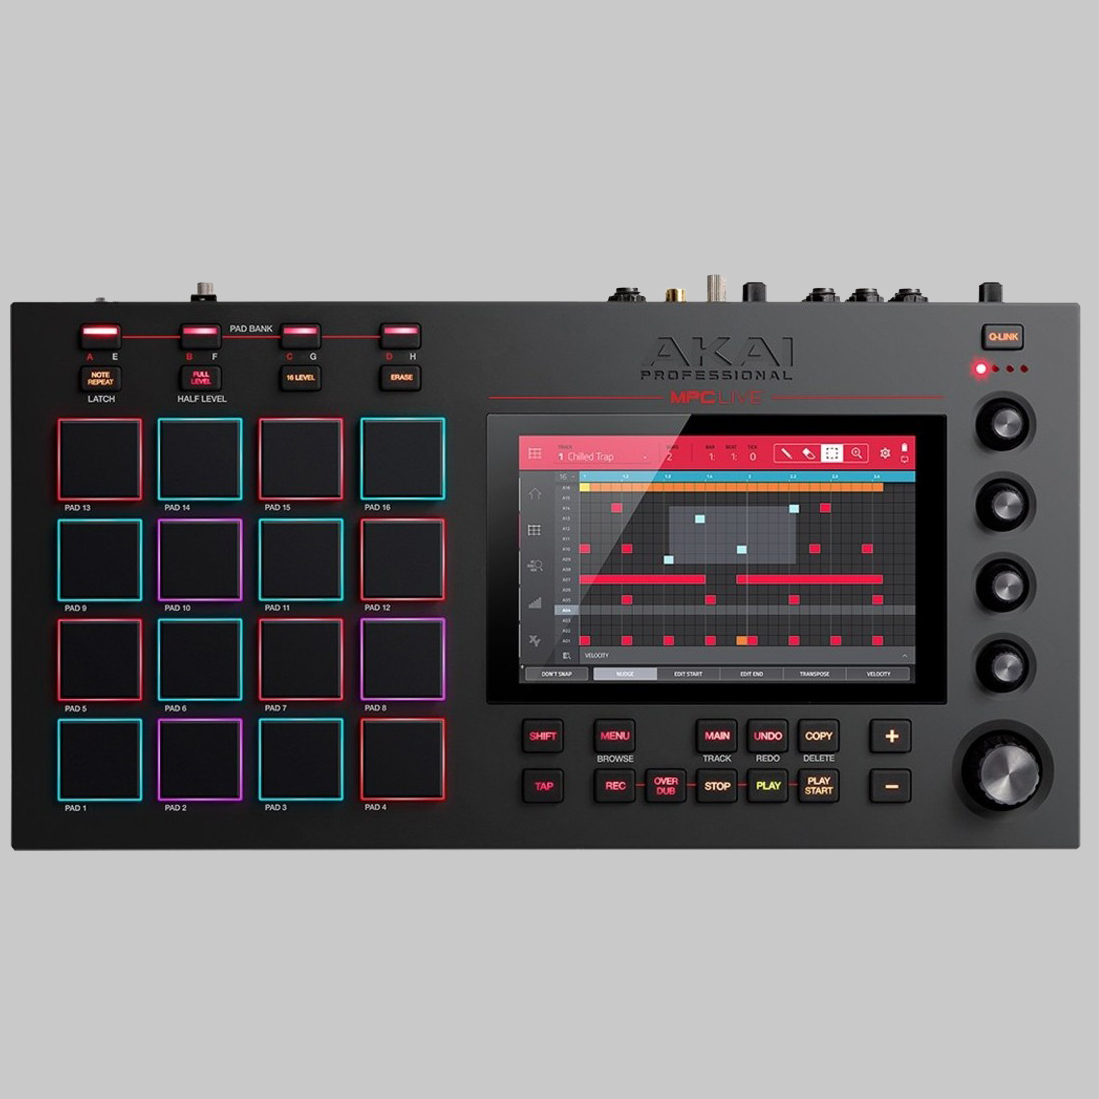 Akai Mpc Akai Expanded Sound 5 Free Mvp Mpc Expansions With Every